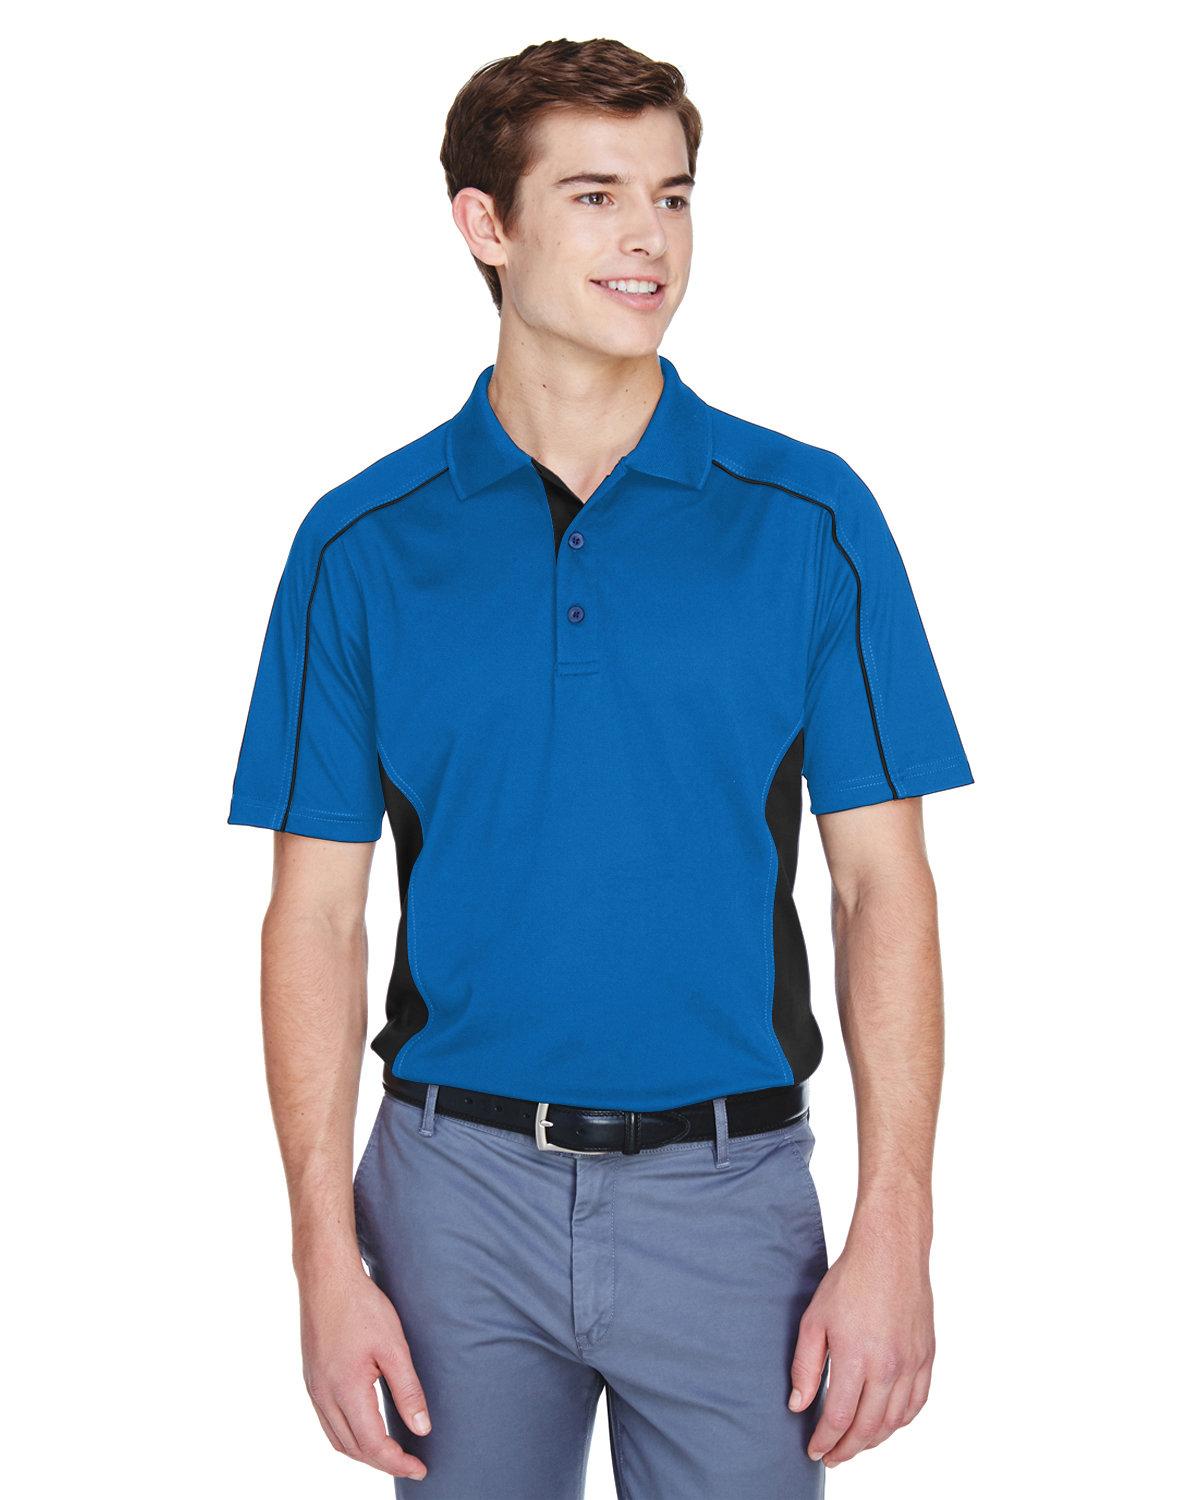 Extreme Men's Eperformance™ Fuse Snag Protection Plus Colorblock Polo TRUE ROYAL/ BLK